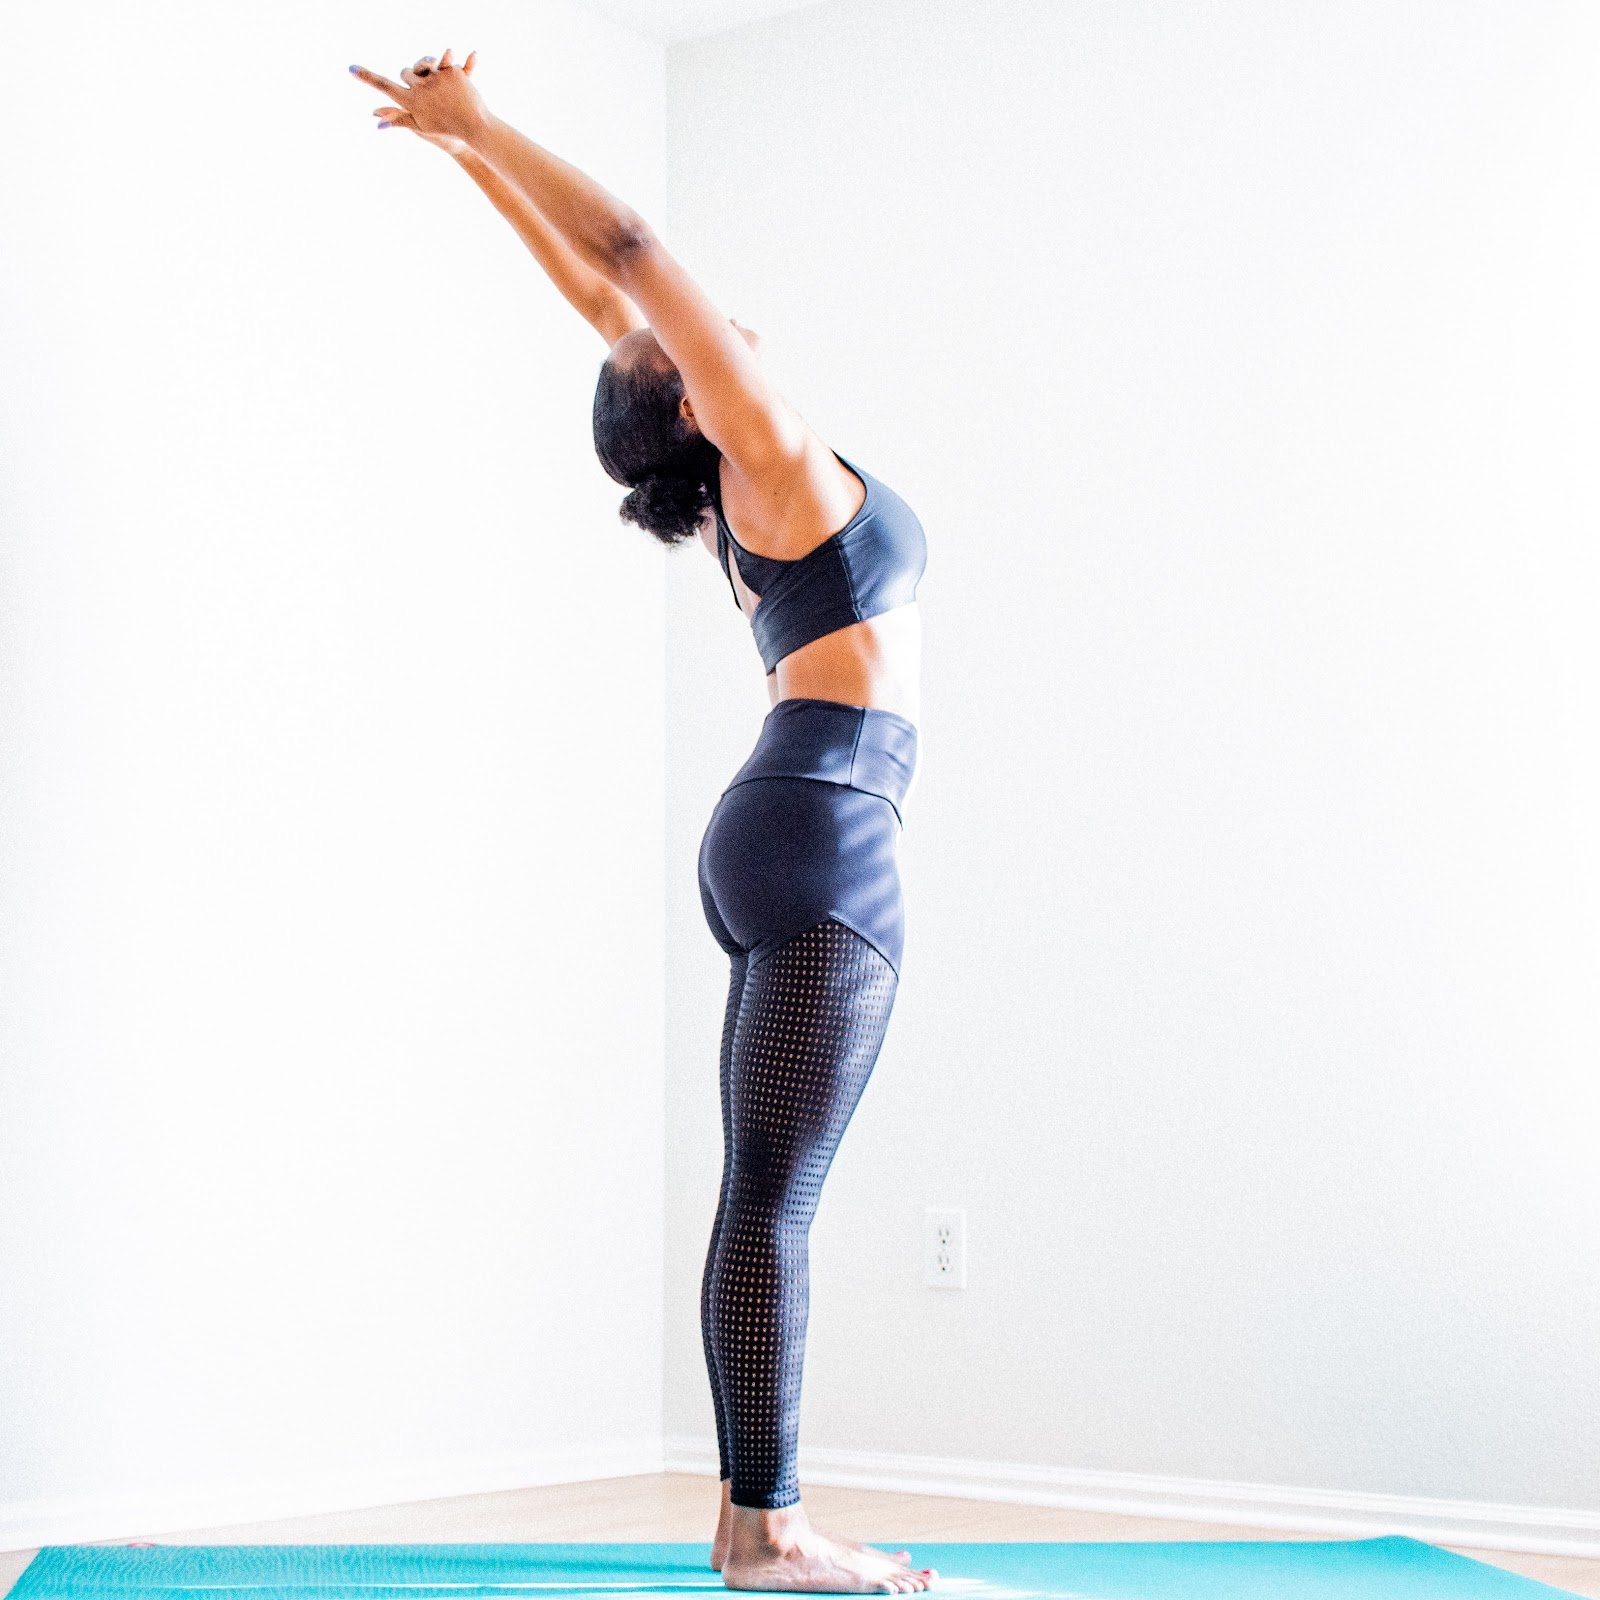 Yoga exercise during covid